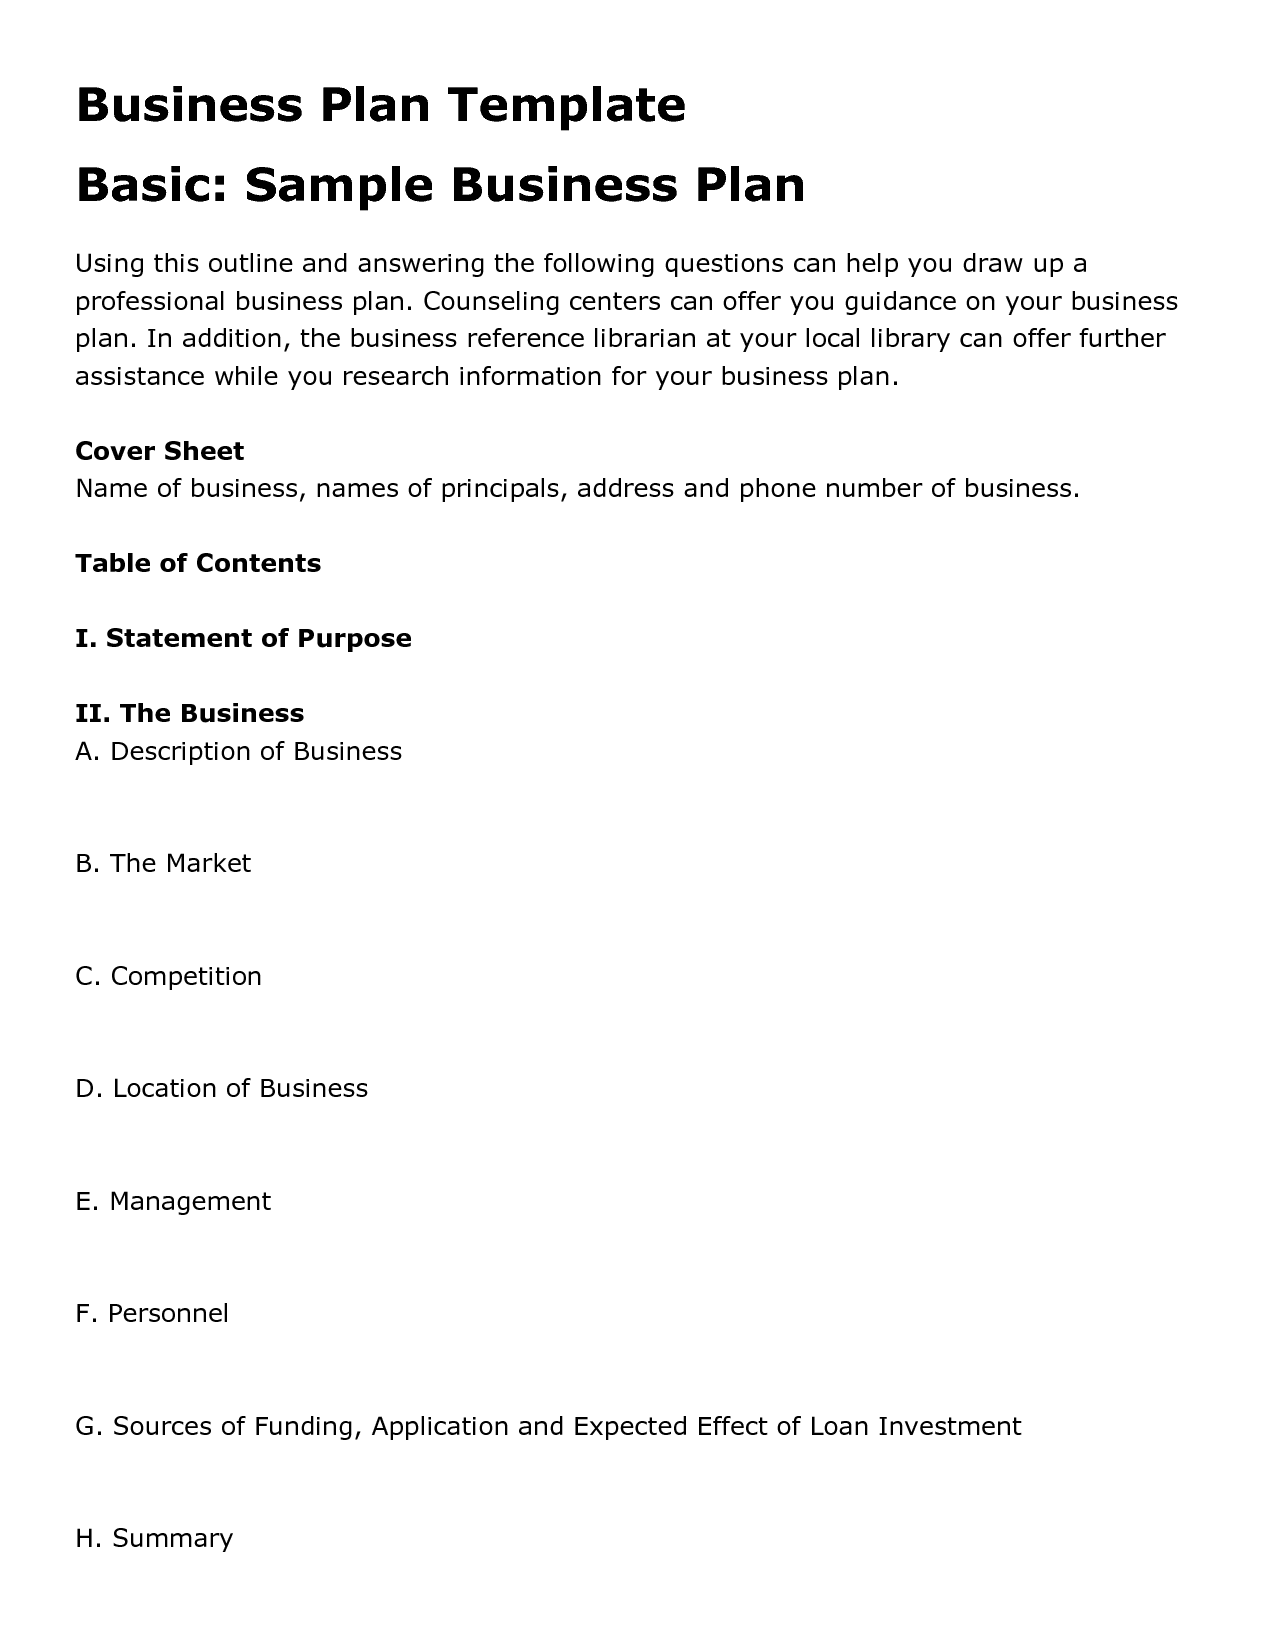 Business Plans Samples | Planning Business Strategies